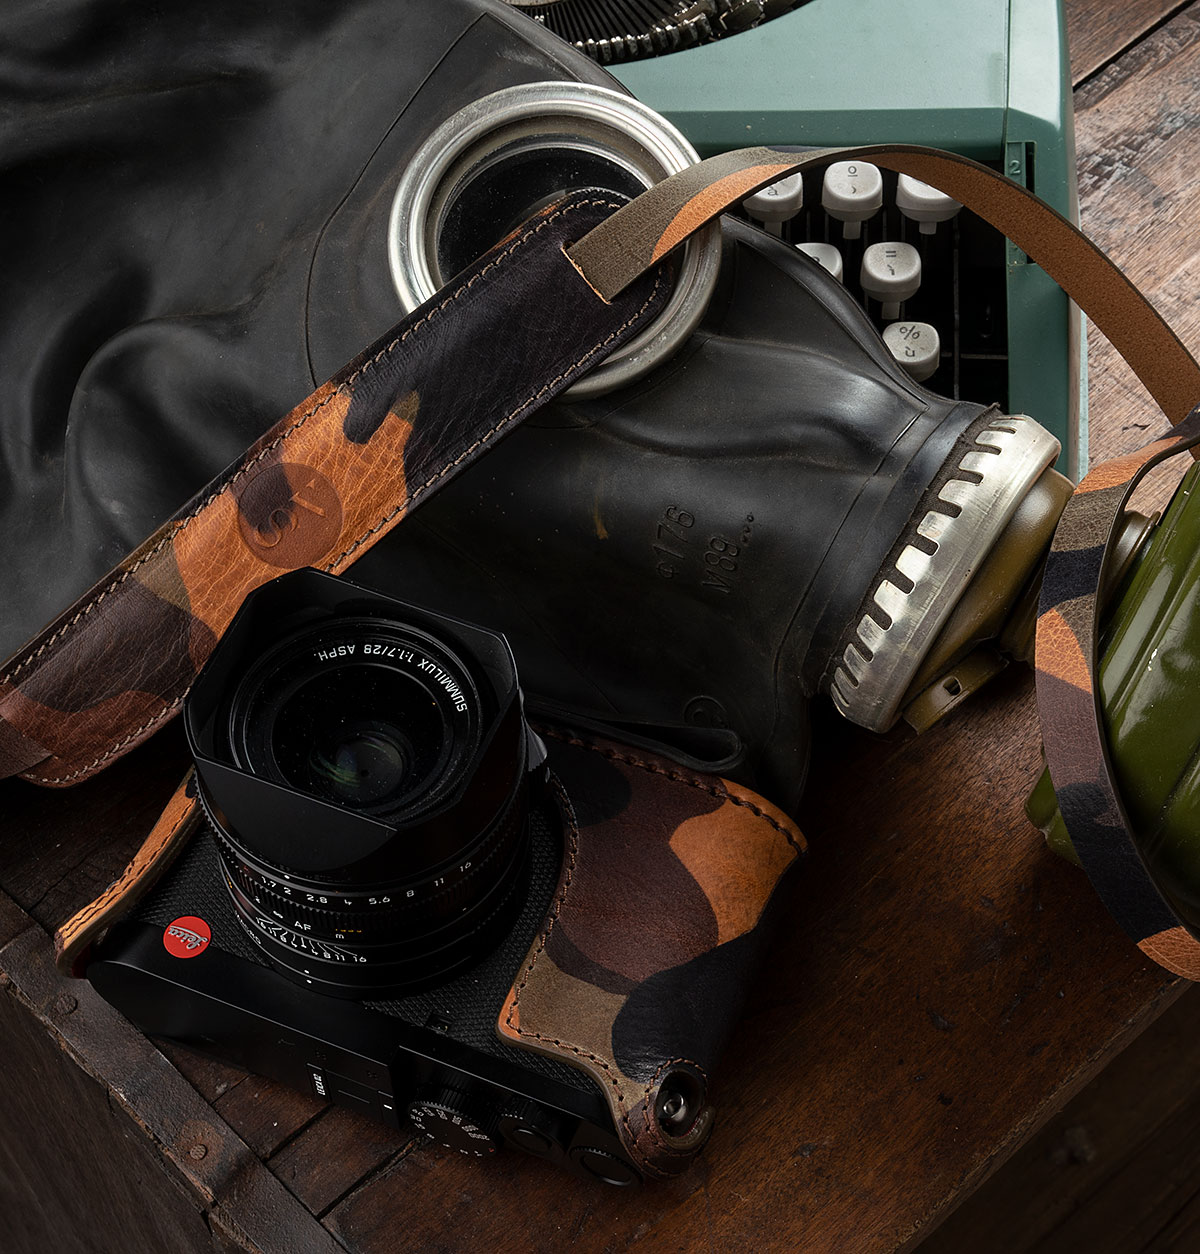 LEICA Q2 FOXY BROWN CAMOUFLAGE